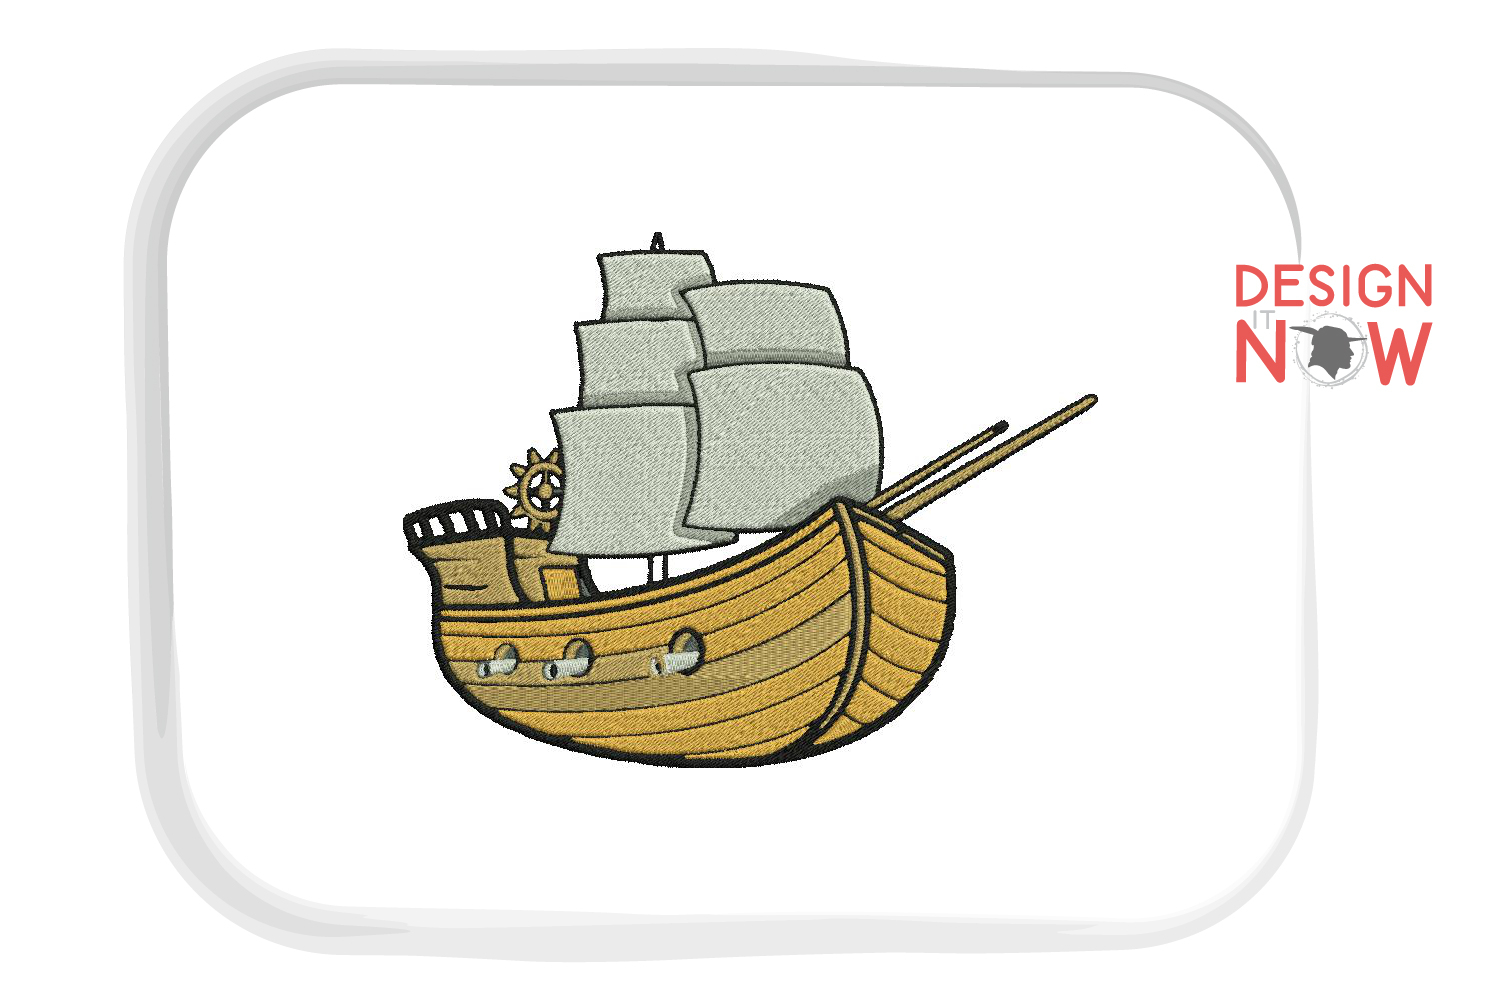 Boat Embroidery Design, Sailing Ship Embroidery Pattern, Sea example image 2